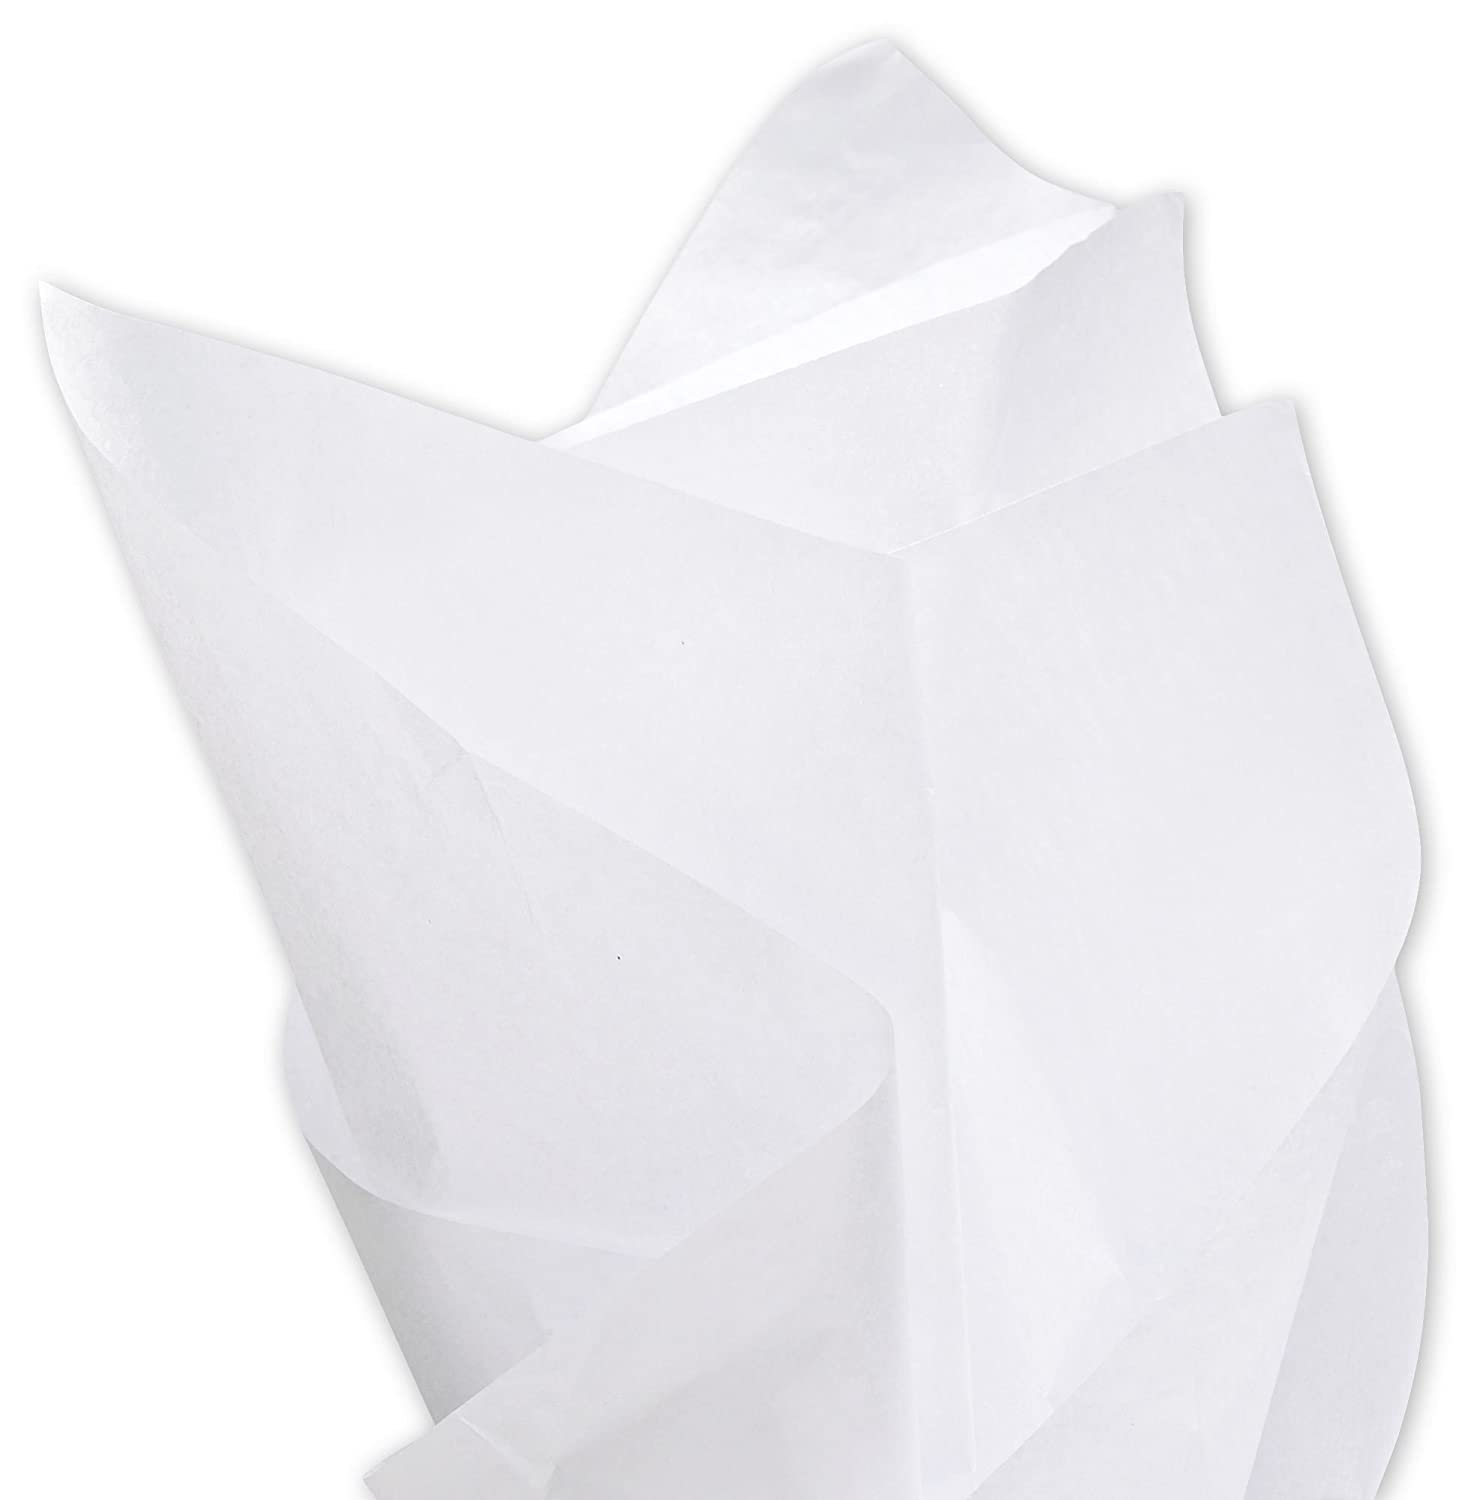 Acid-Free White Tissue Paper 15 x 20, Pack of 100 Sheets …A1 Bakery Supplies